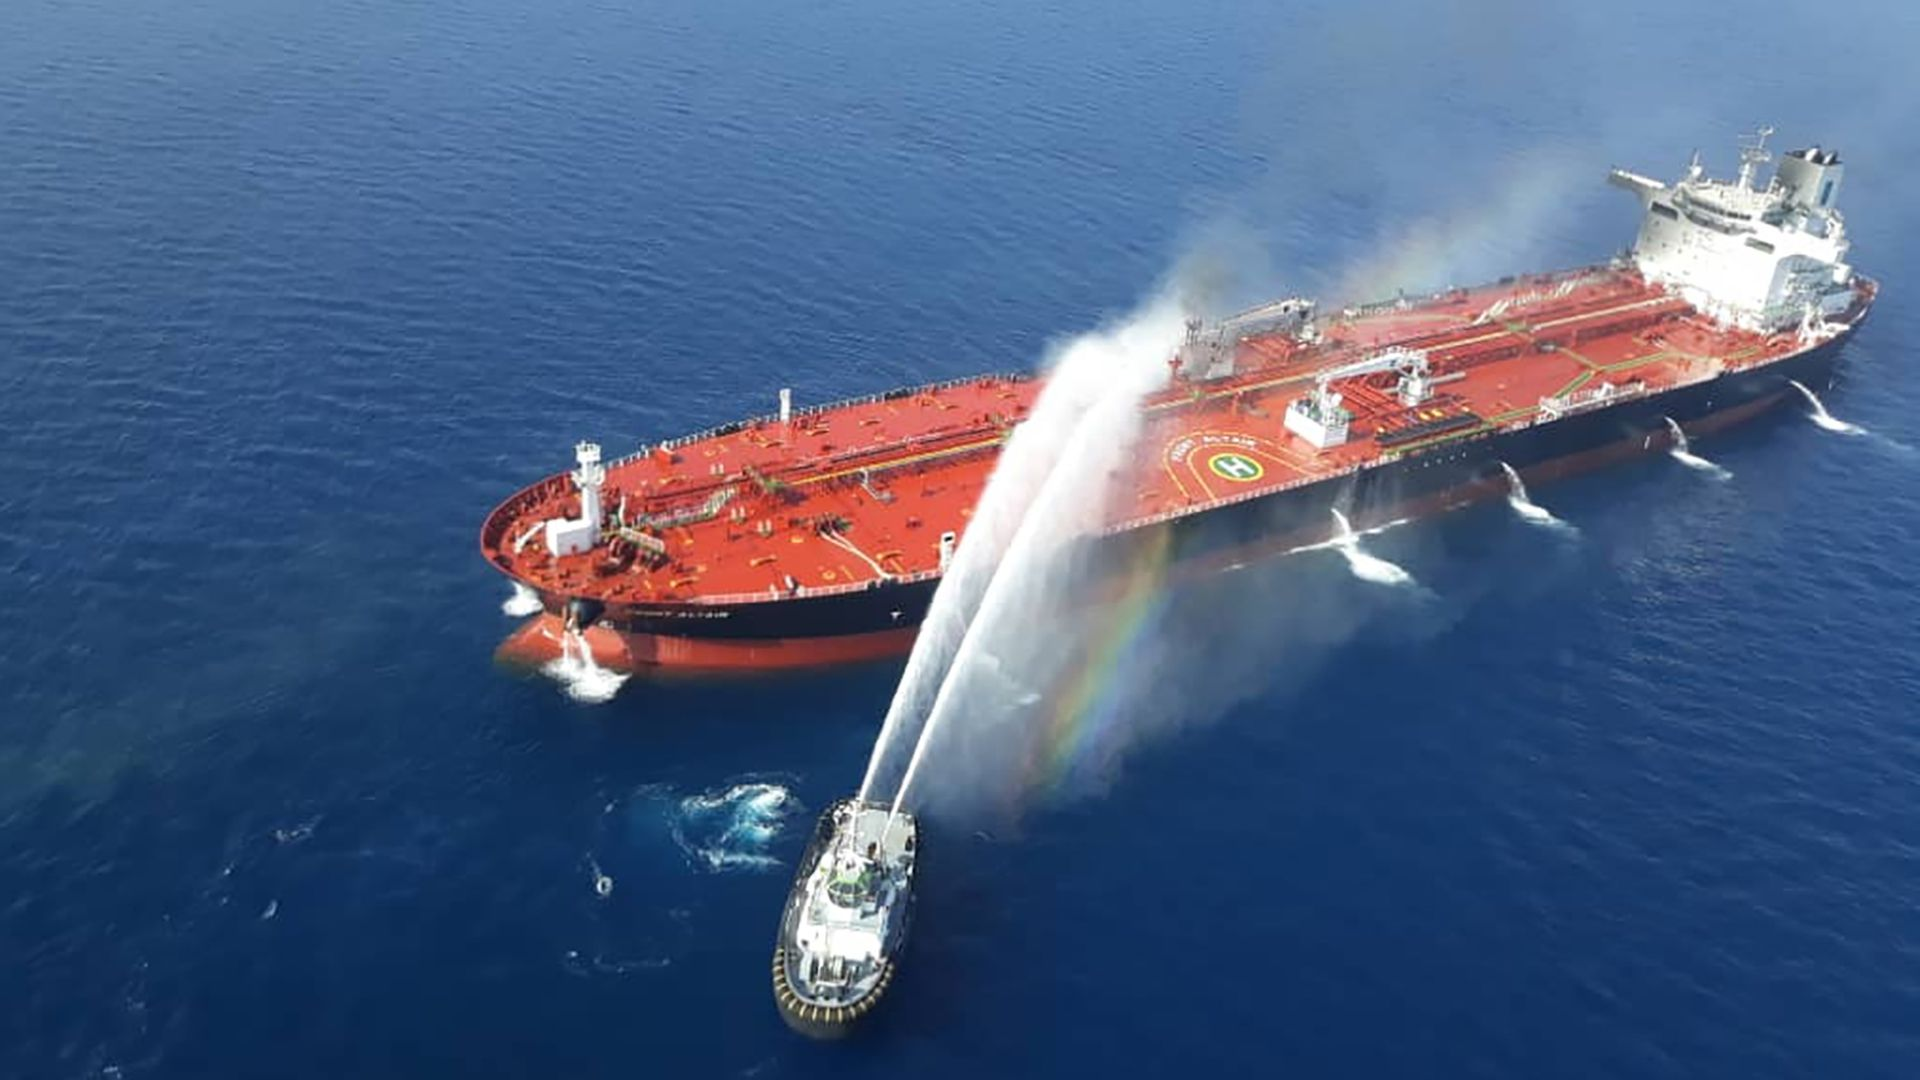 Photo of one of the attacked tankers having water streamed over its onboard fire by a rescue boat